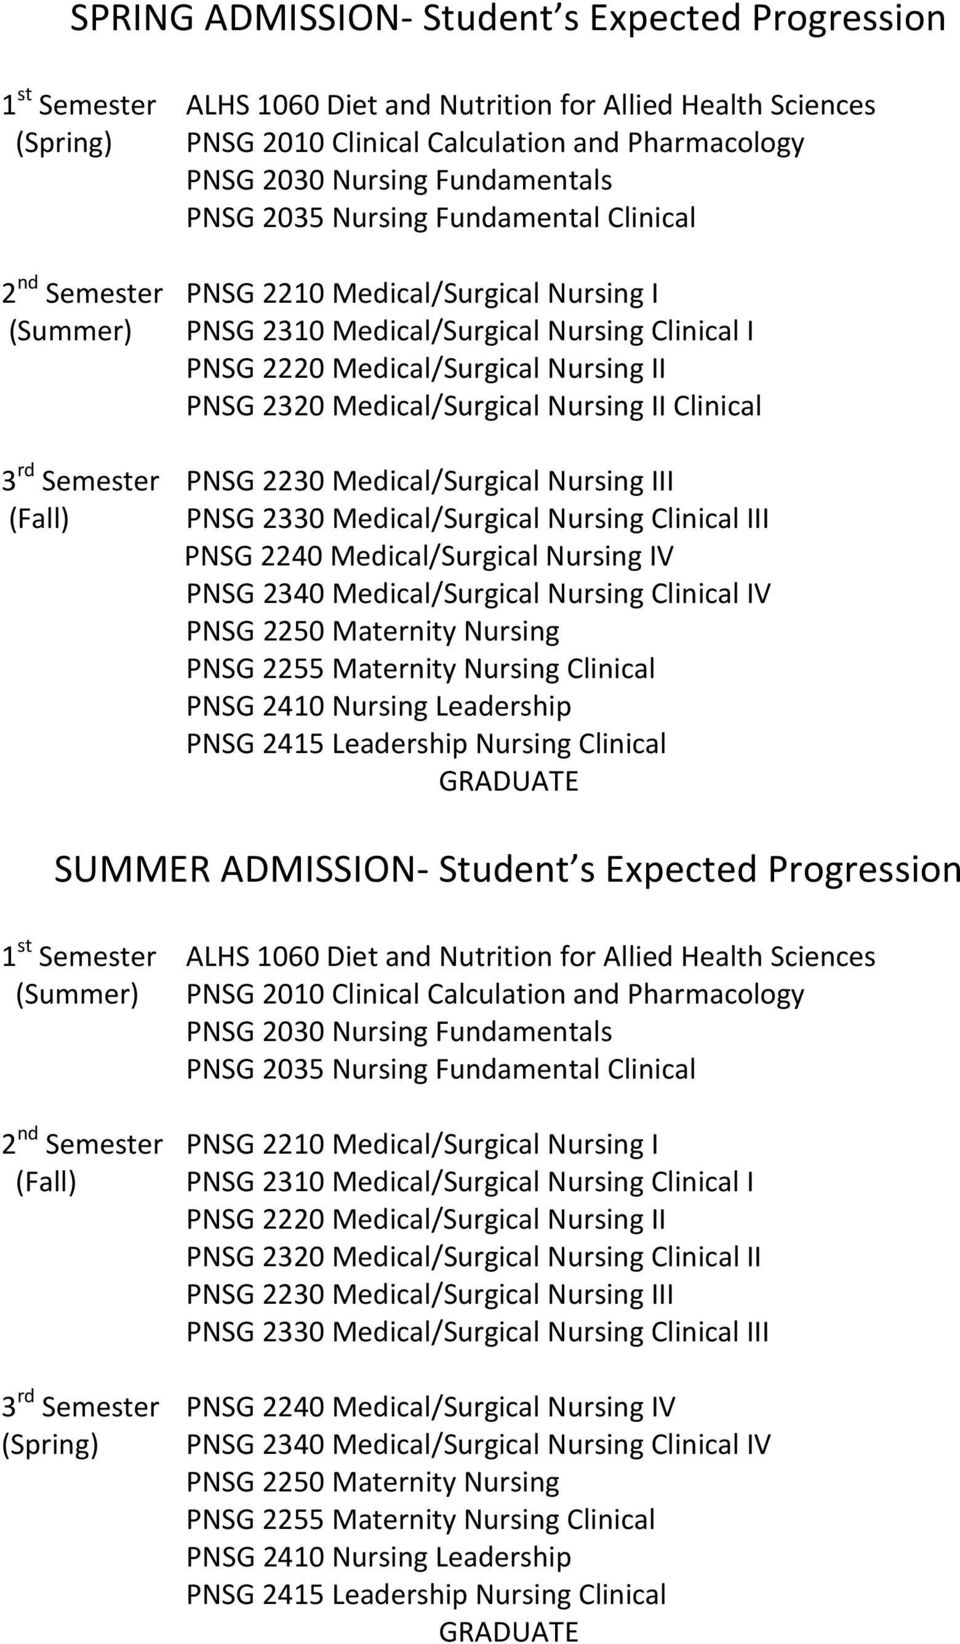 PNSG 2320 Medical/Surgical Nursing II Clinical 3 rd Semester PNSG 2230 Medical/Surgical Nursing III (Fall) PNSG 2330 Medical/Surgical Nursing Clinical III PNSG 2240 Medical/Surgical Nursing IV PNSG